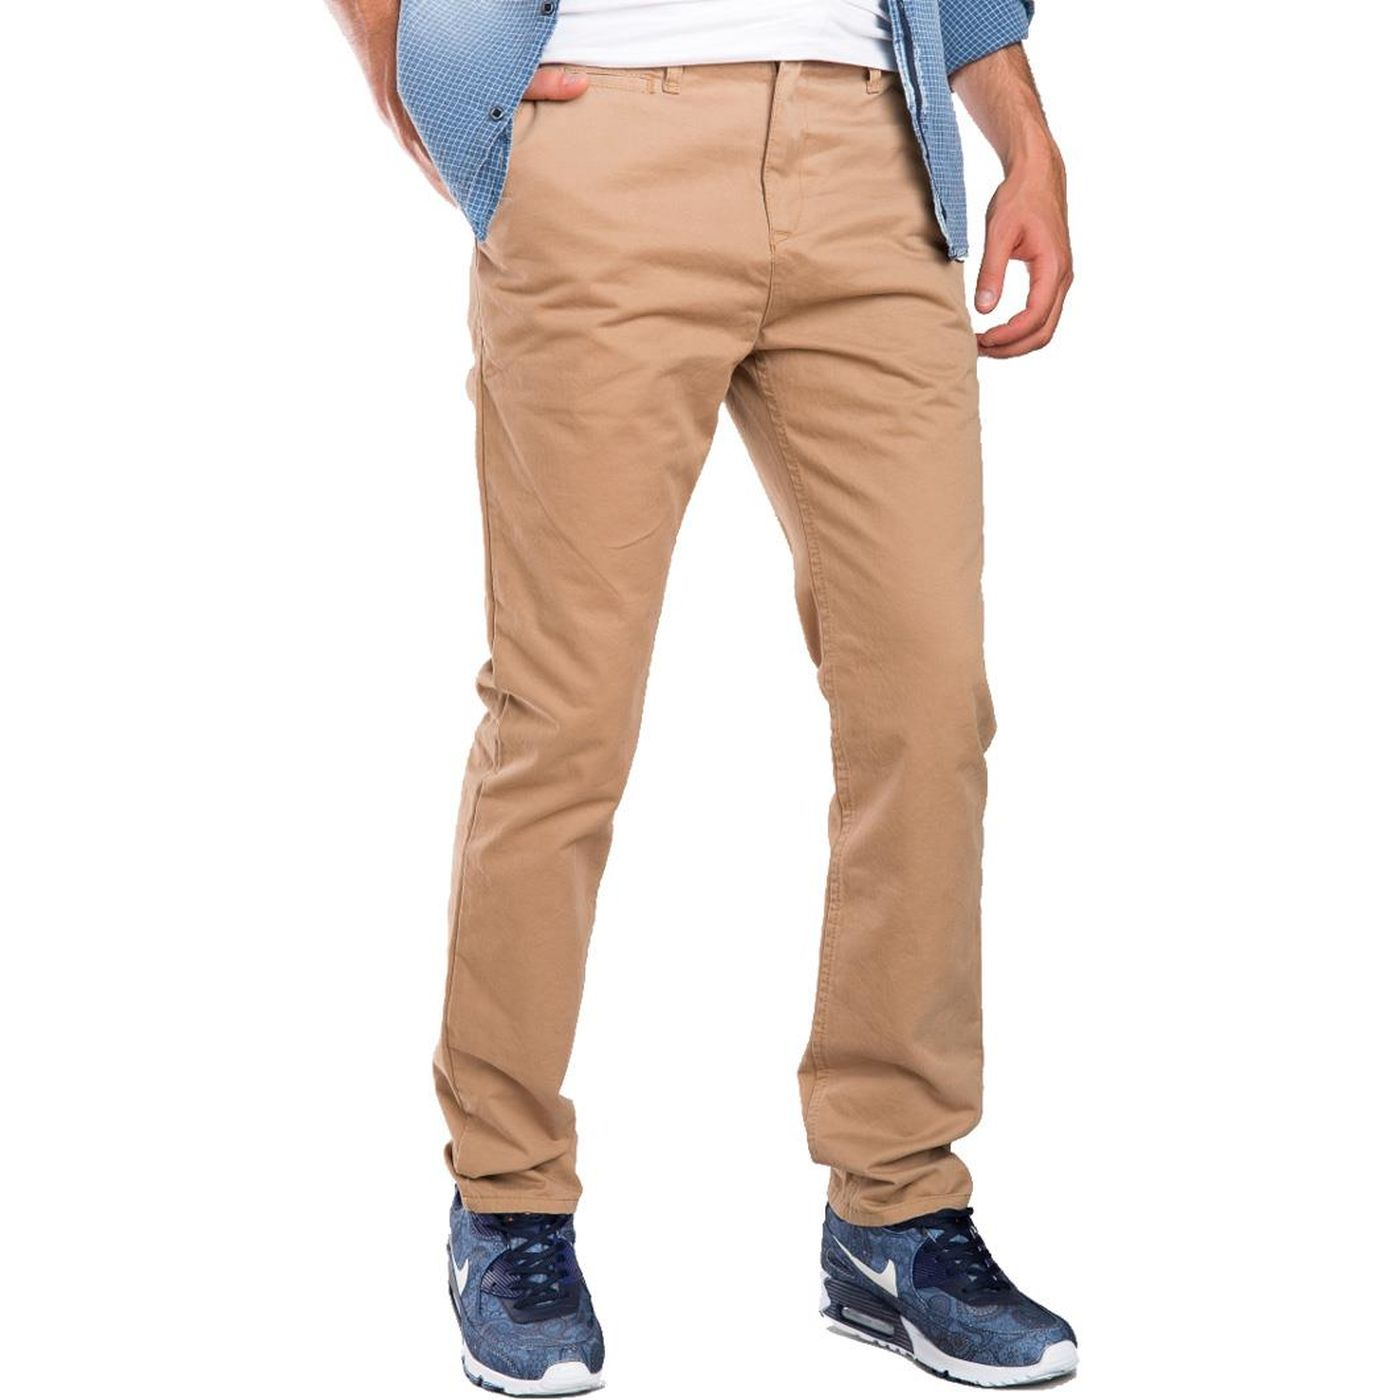 2822bffa2e Red Bridge Men BJC Straight Leg Jeans Chino Pant brown-RB-177-brown ...